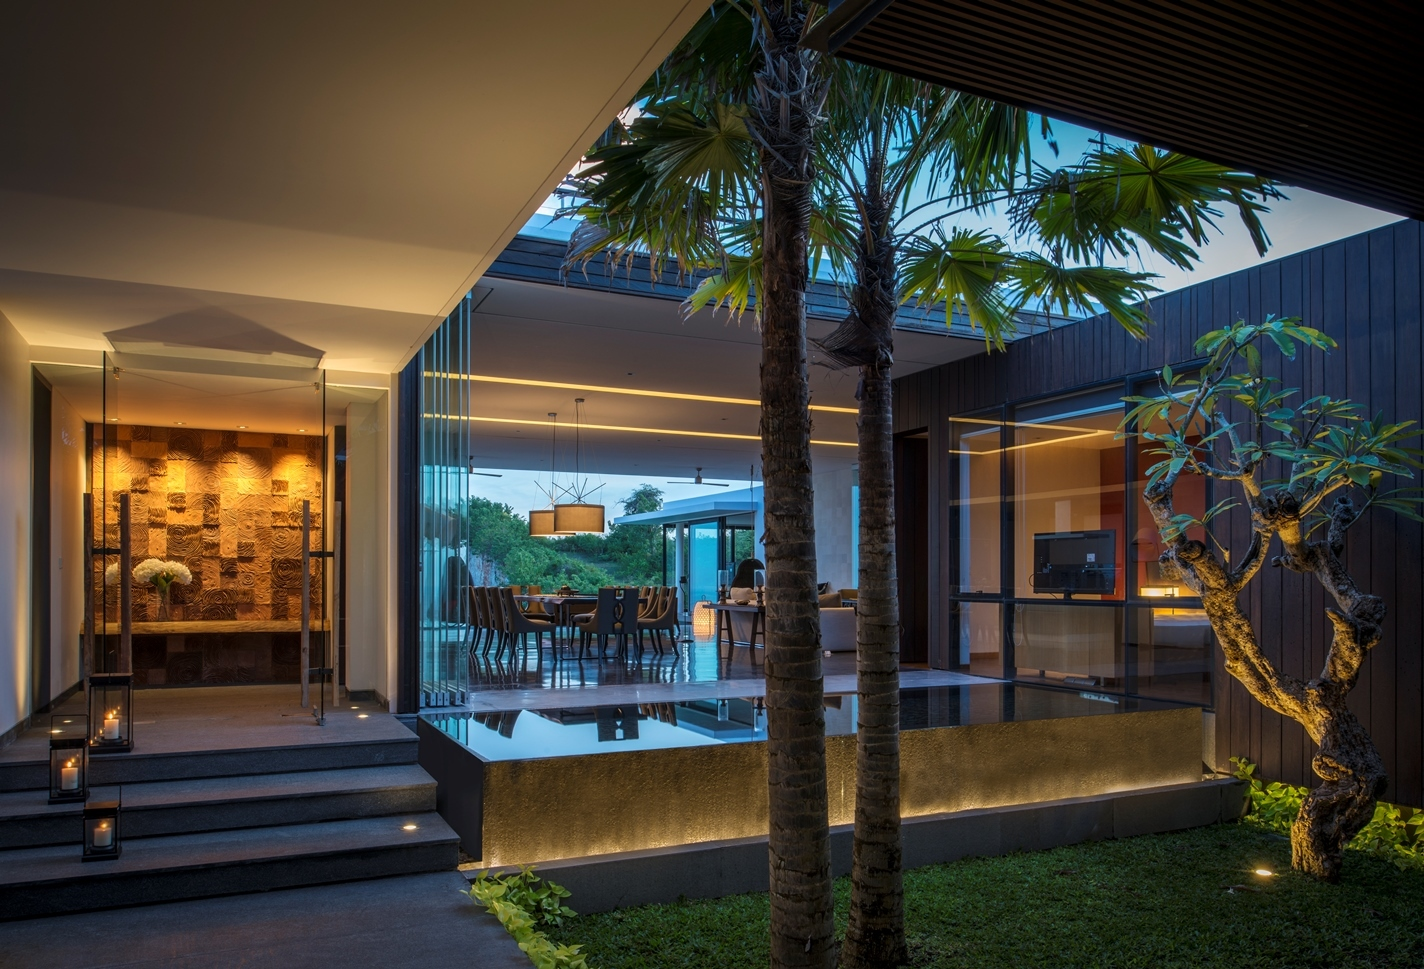 Genial Modern Tropical Home With Interior Courtyard